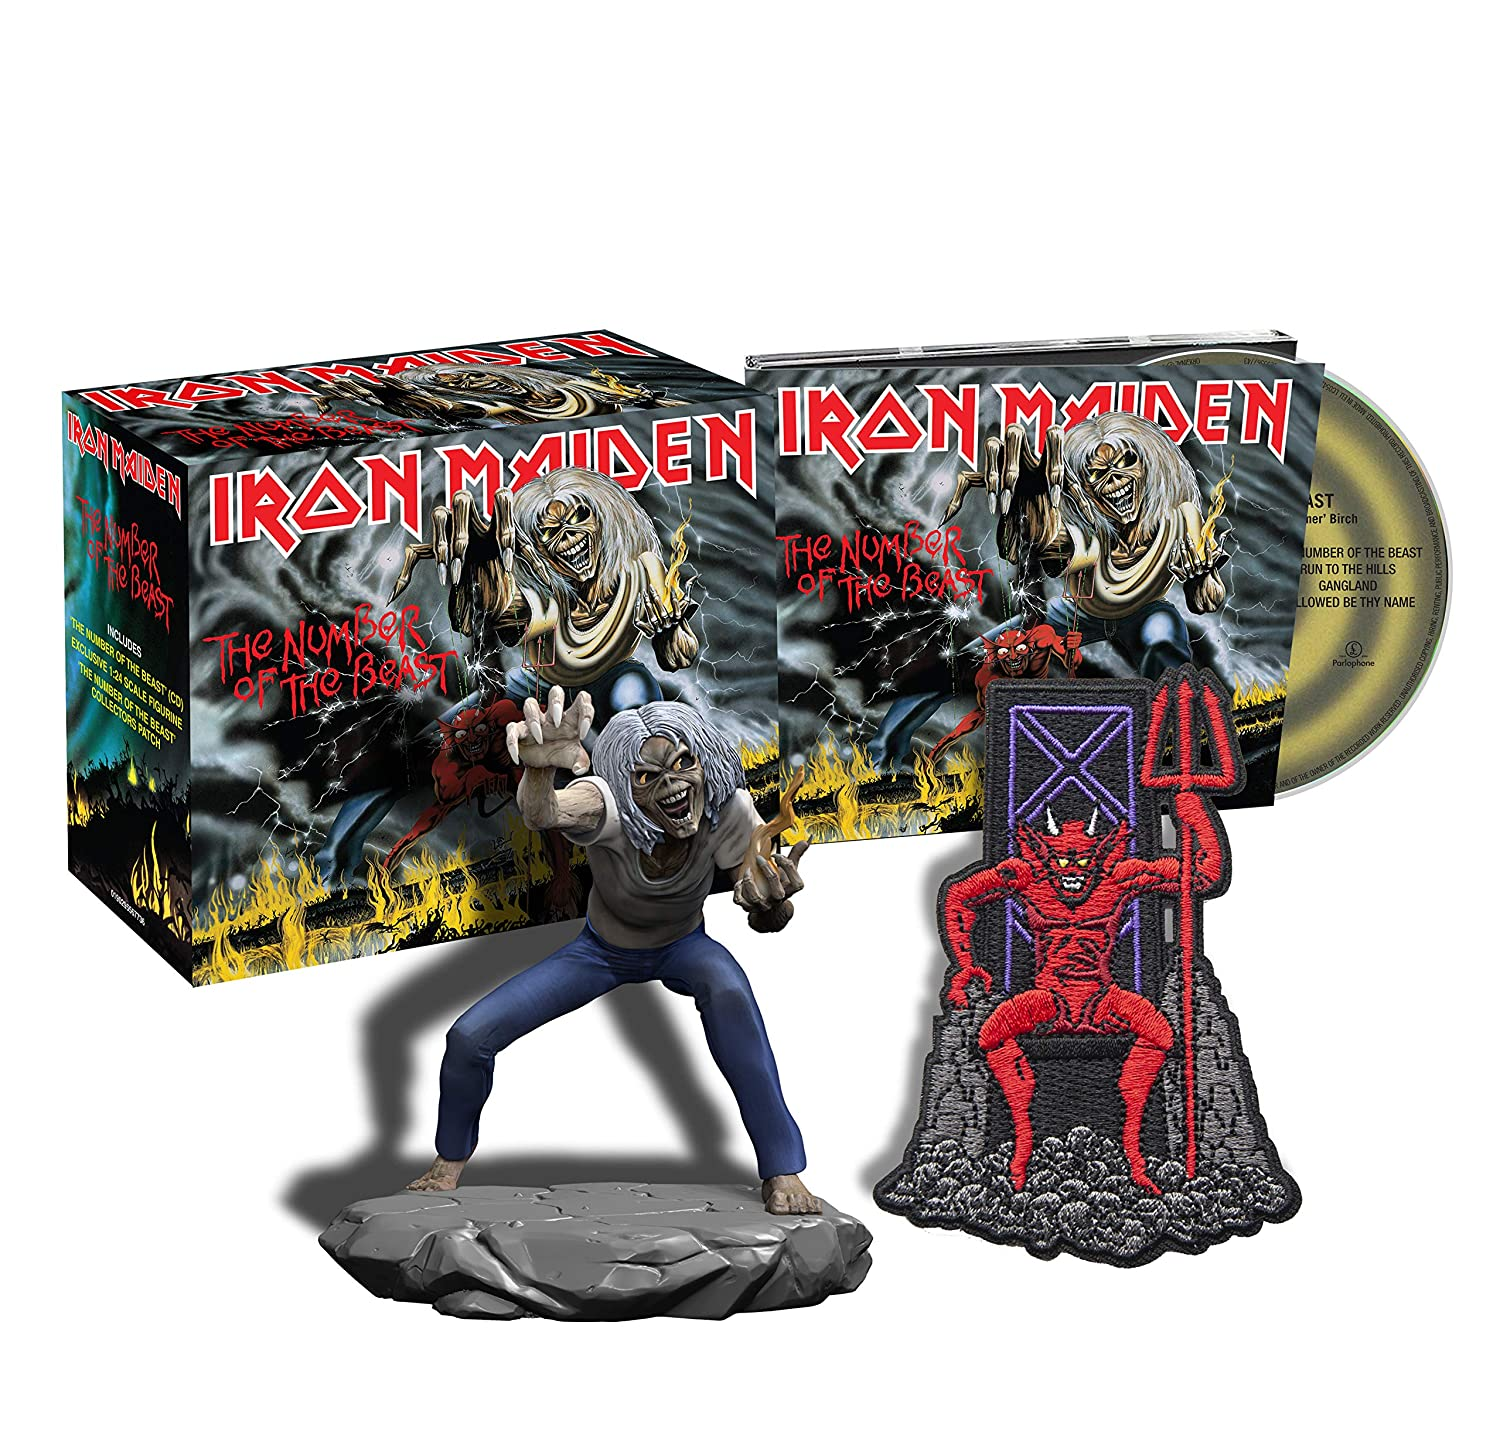 The Number Of The Beast (CD + Figura)